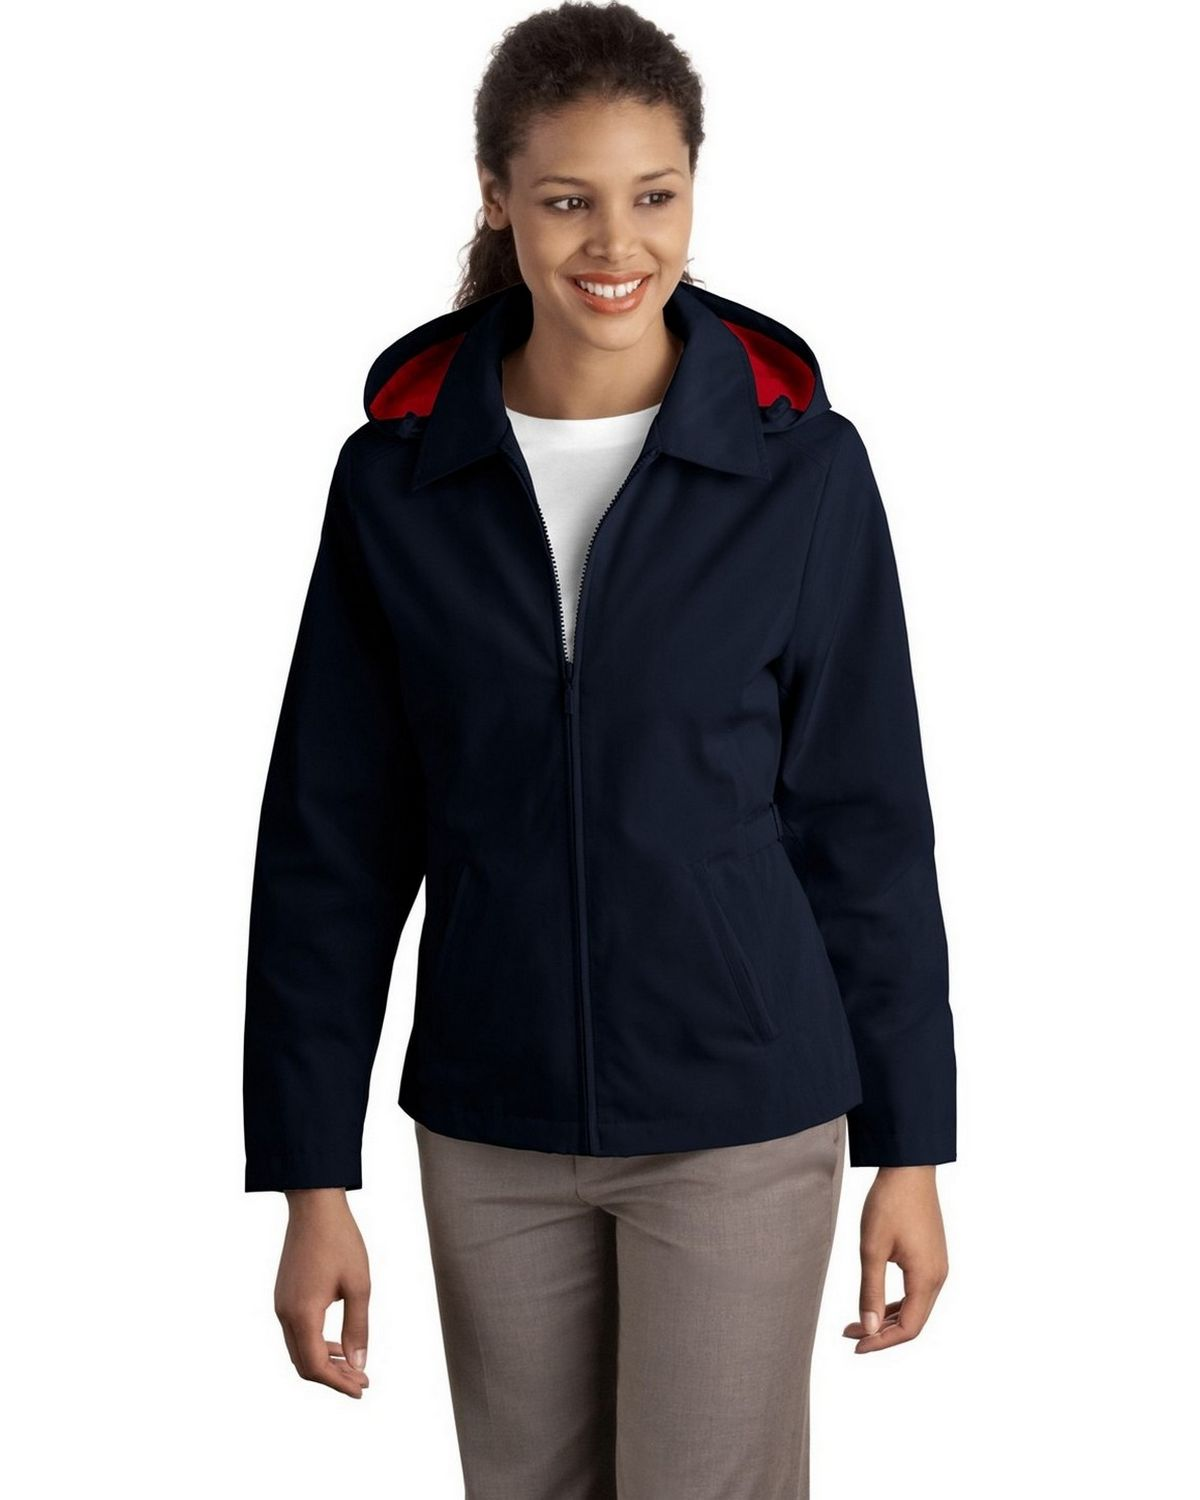 Port Authority L764 Women's Legacy Jacket - Dark Navy/Red - XS from Port Authority